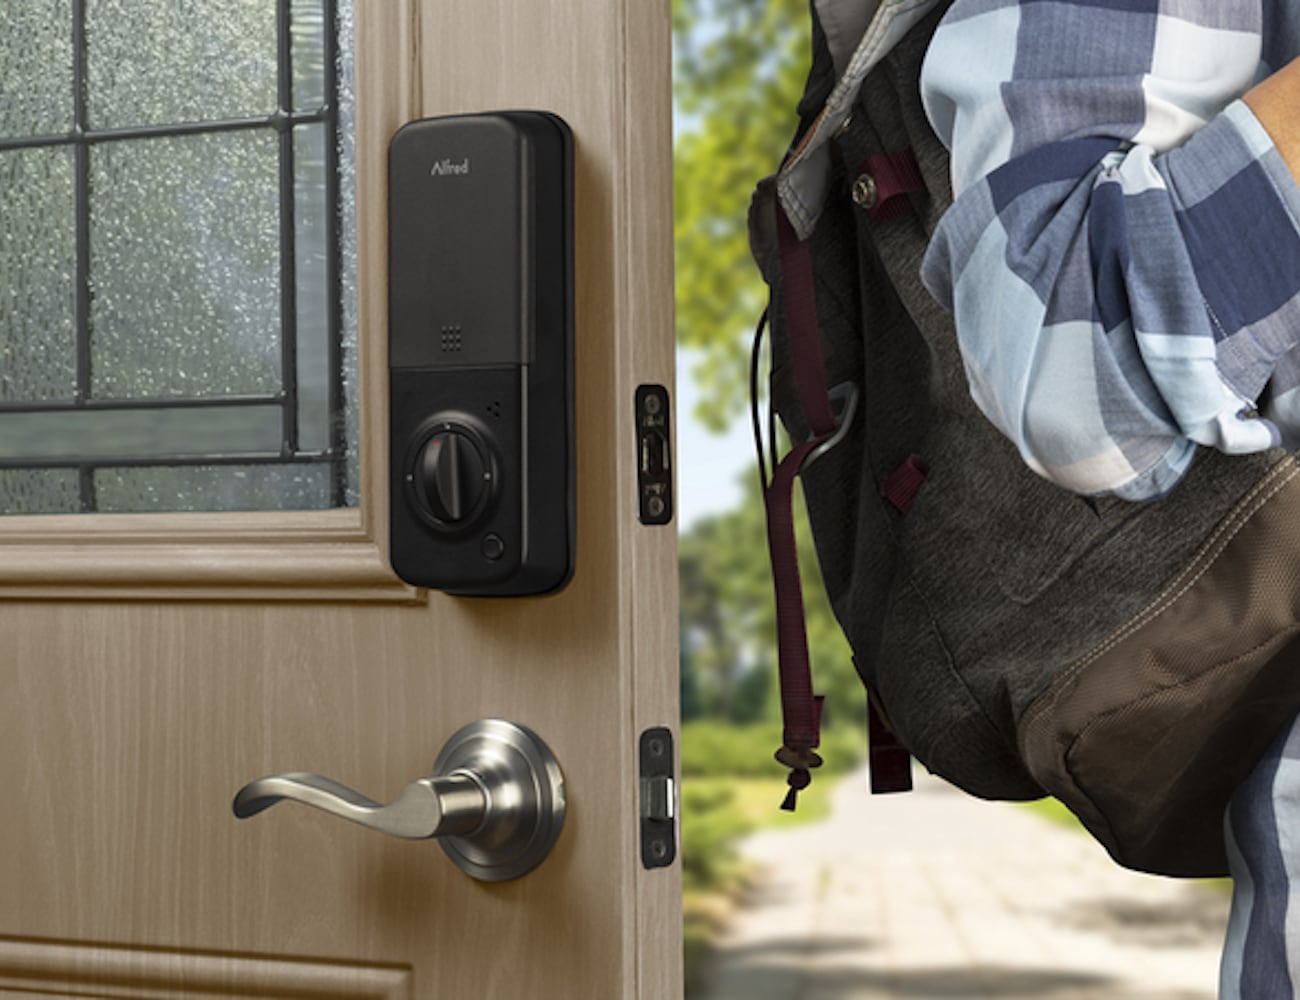 Alfred Smart Touchscreen Home Deadbolt ensures you know who's coming and going